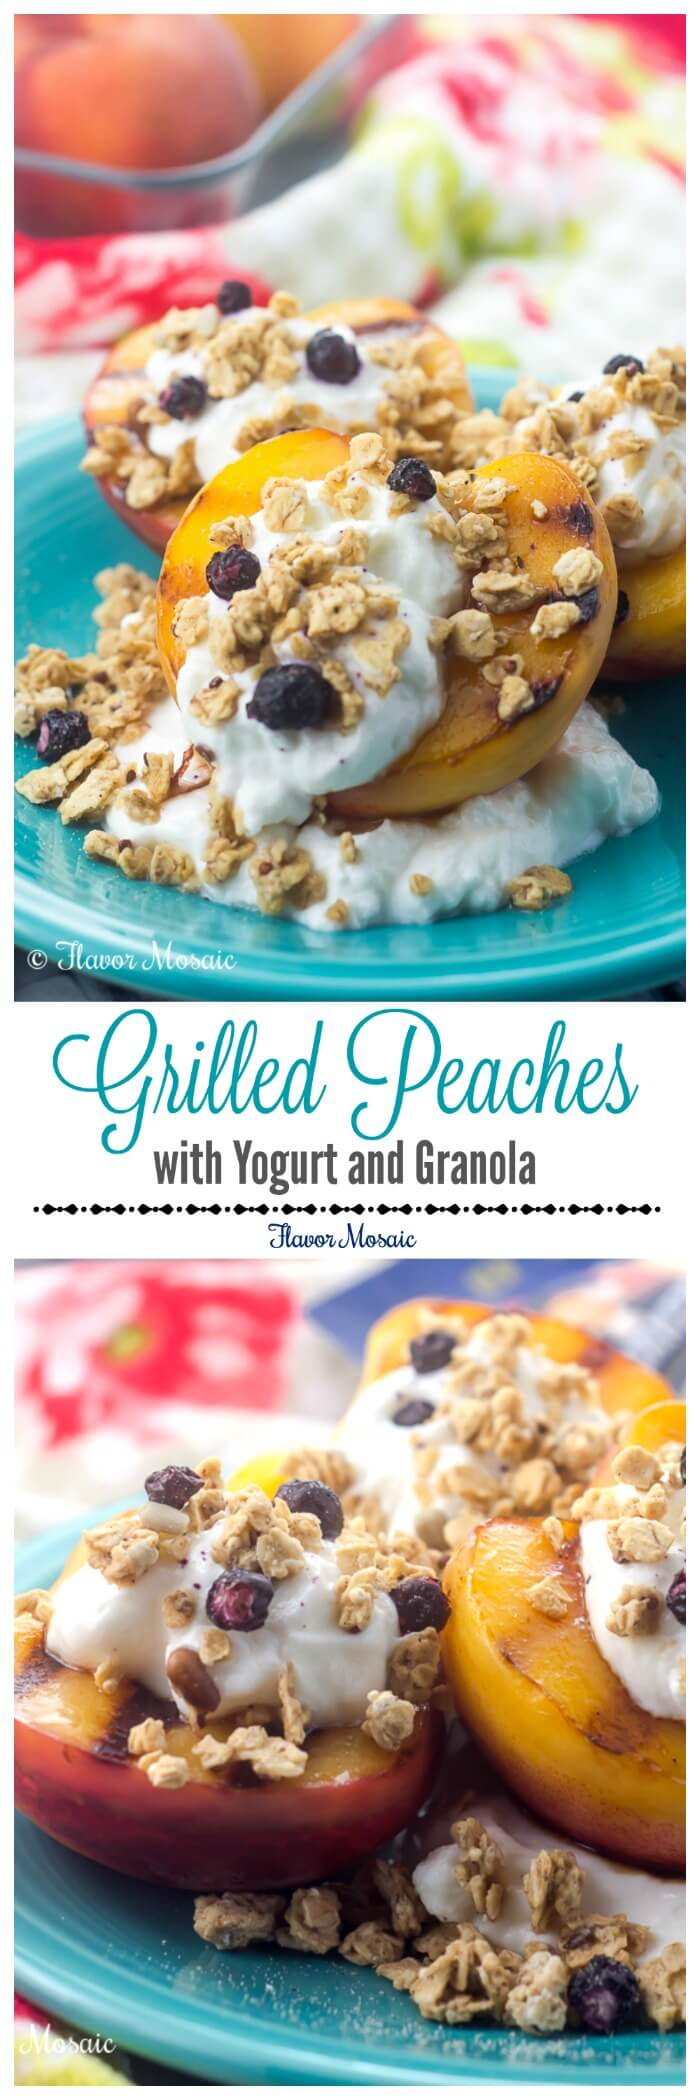 Grilled Peaches with Yogurt and Granola make a super quick and easy breakfast on busy mornings, and provide a sweet, crunchy and wholesome alternative to your standard breakfast or dessert. #GranolaMyWay #ad @QuakerOats